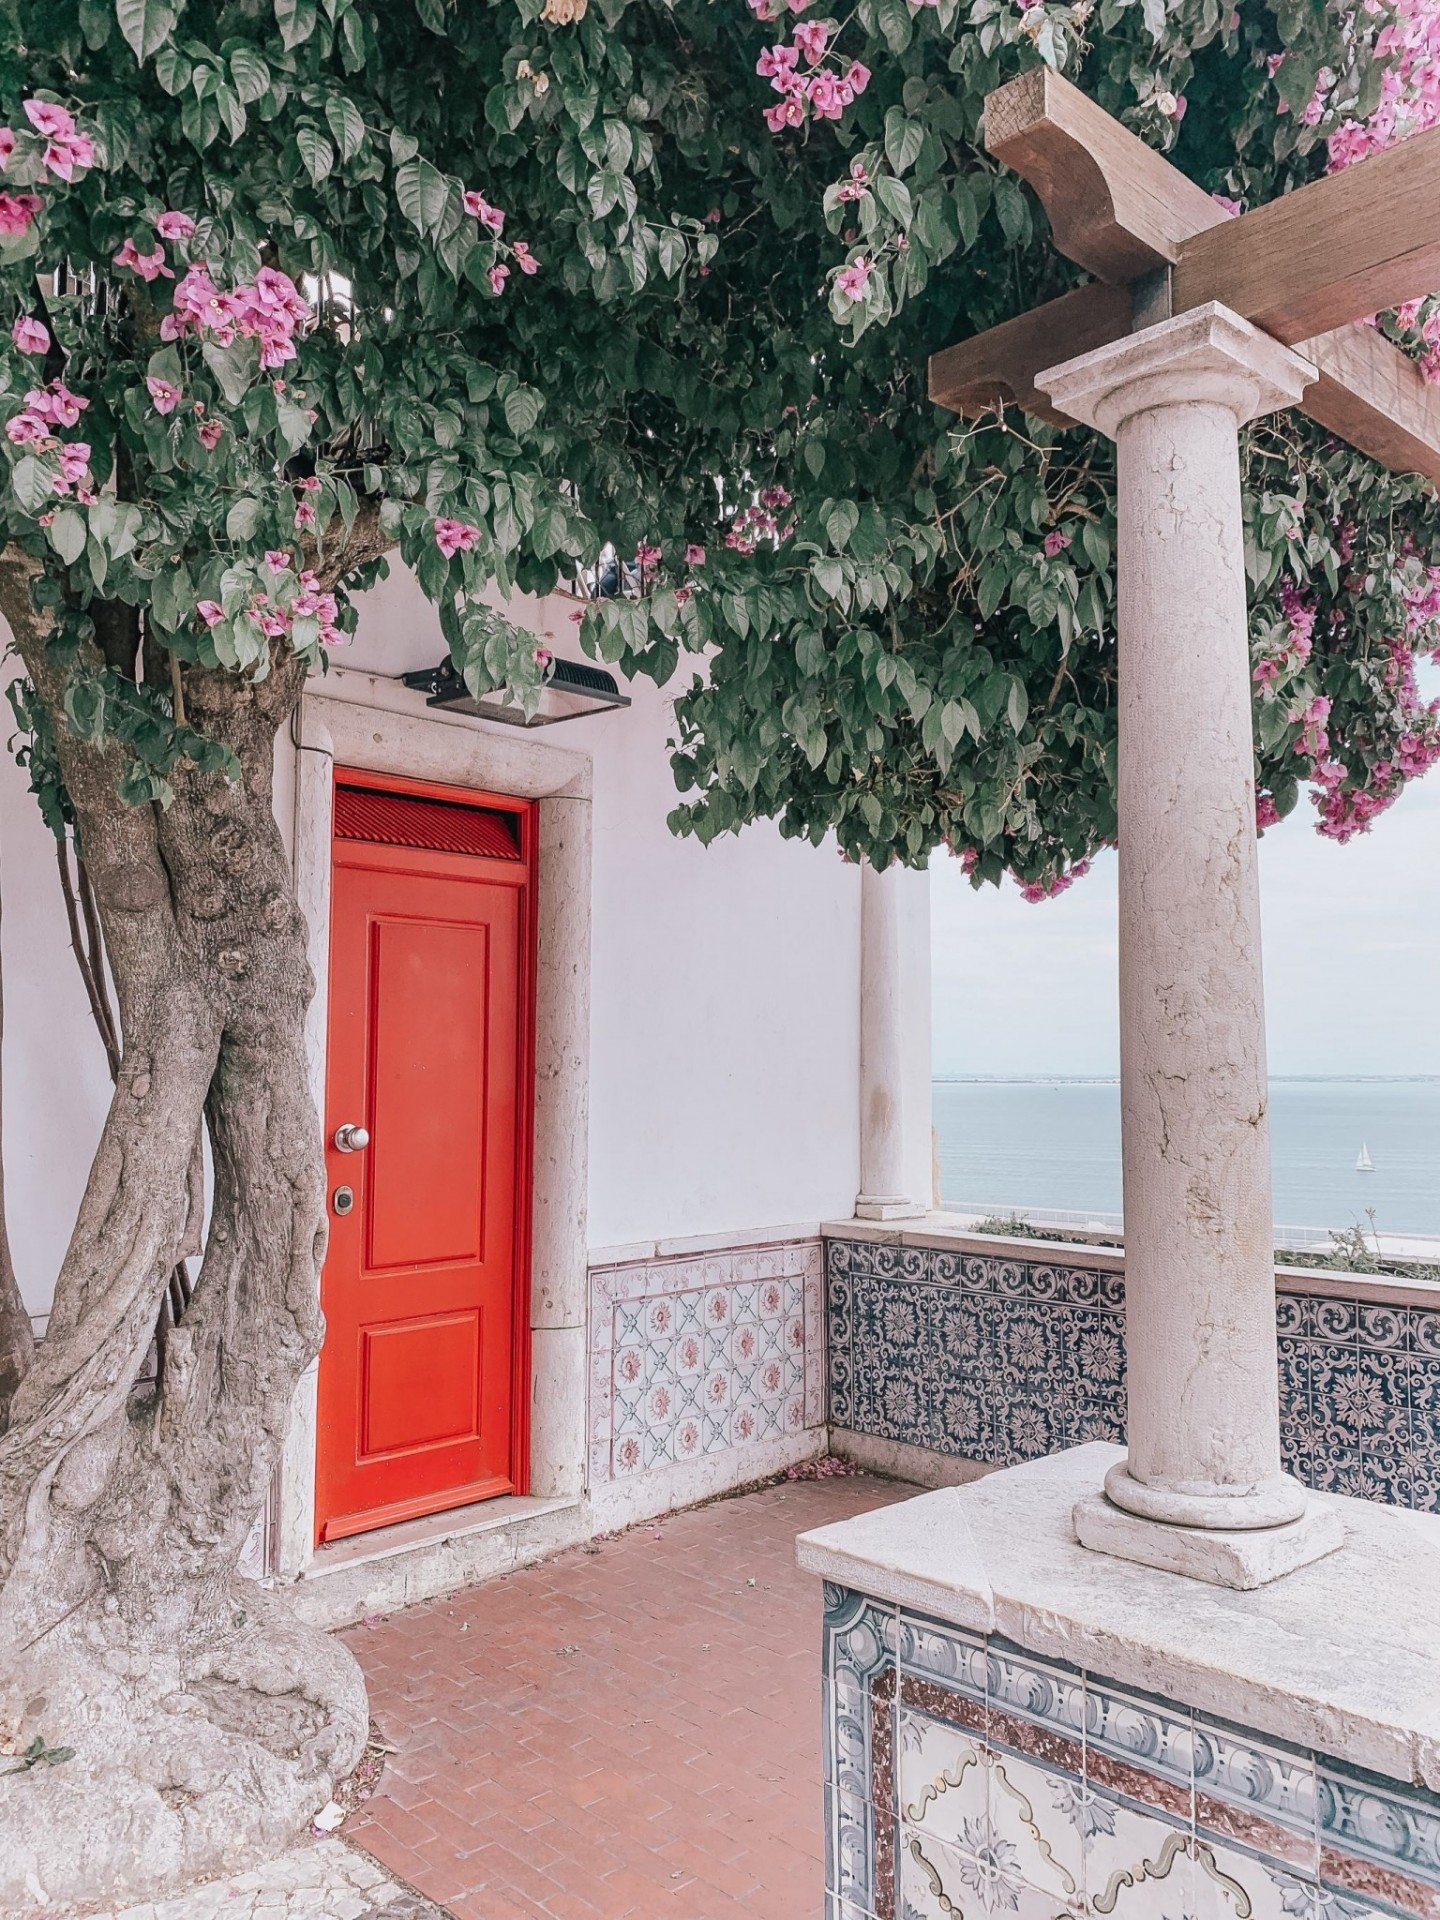 Lifestyle blogger Mollie Moore shares a Lisbon travel guide   Visiting Portugal: The Ultimate Lisbon Travel Guide & the Best Things to Do by popular London travel blogger, Mollie Moore: image of a building with a red door.